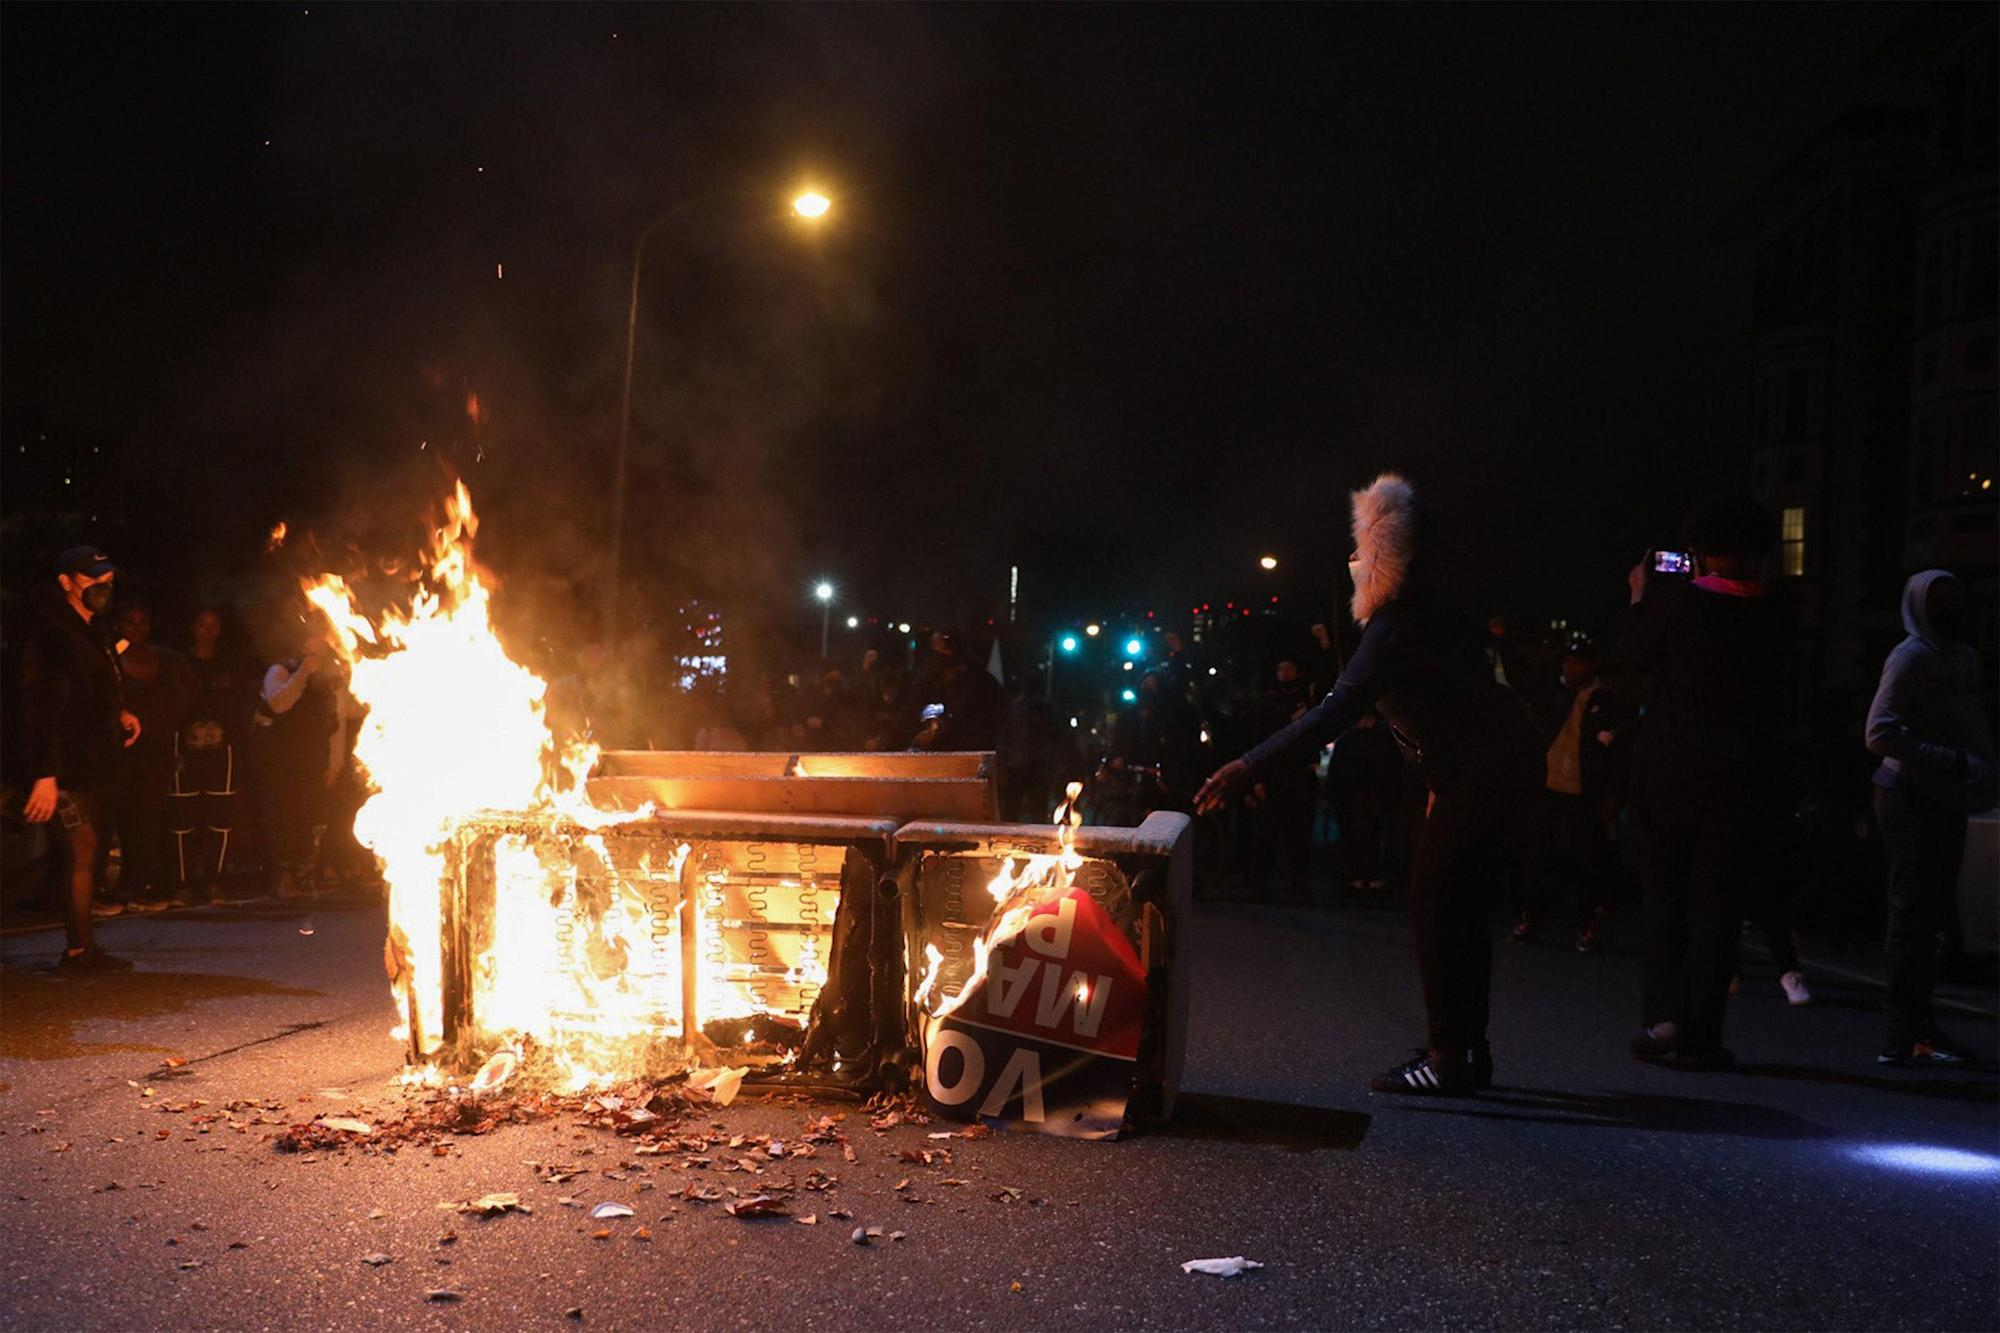 Philadelphia announces a curfew after two nights of unrest following Walter Wallace killing